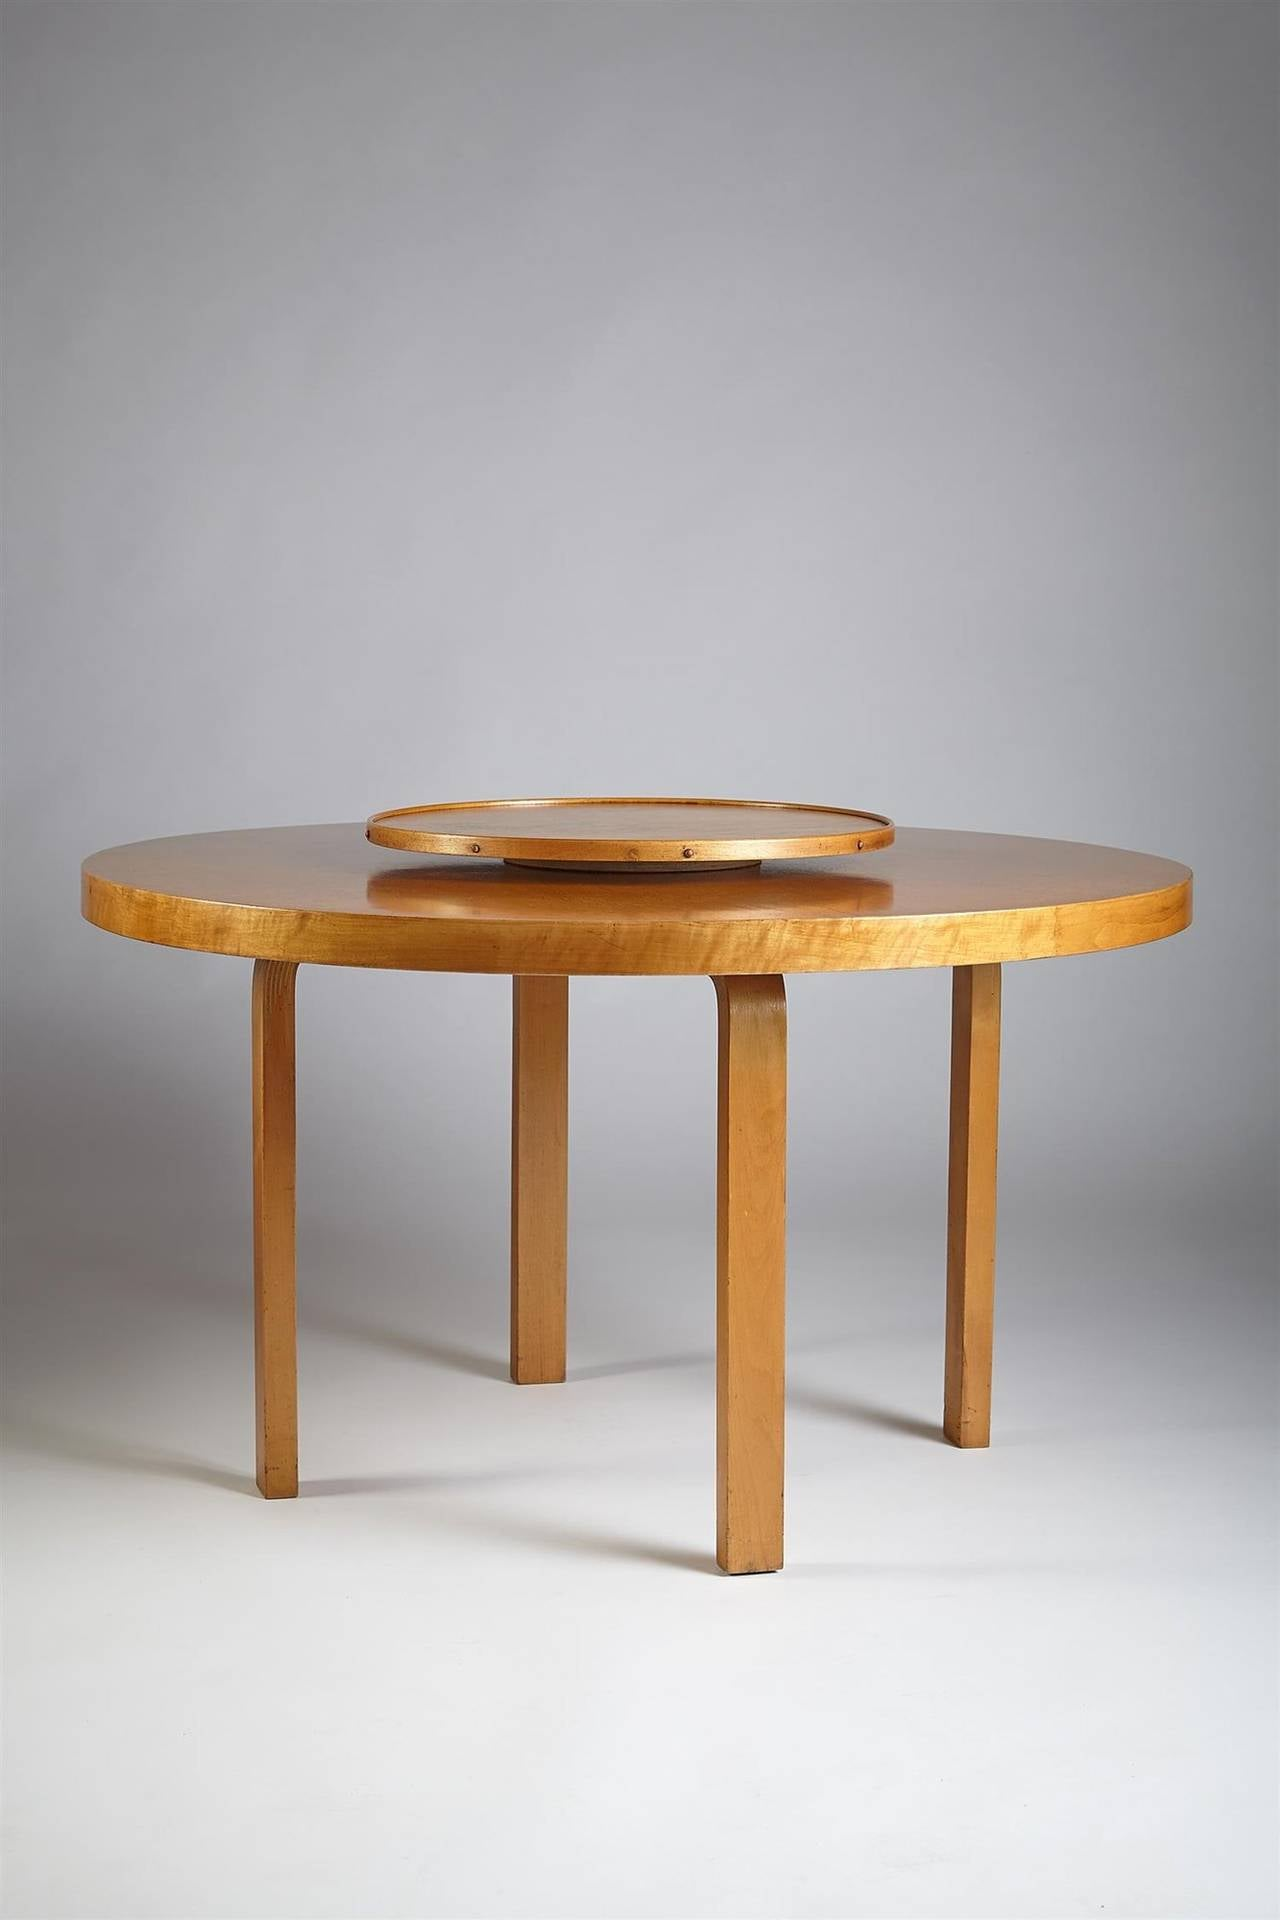 Dining table with carousel designed by alvar aalto for for Dining table design examples